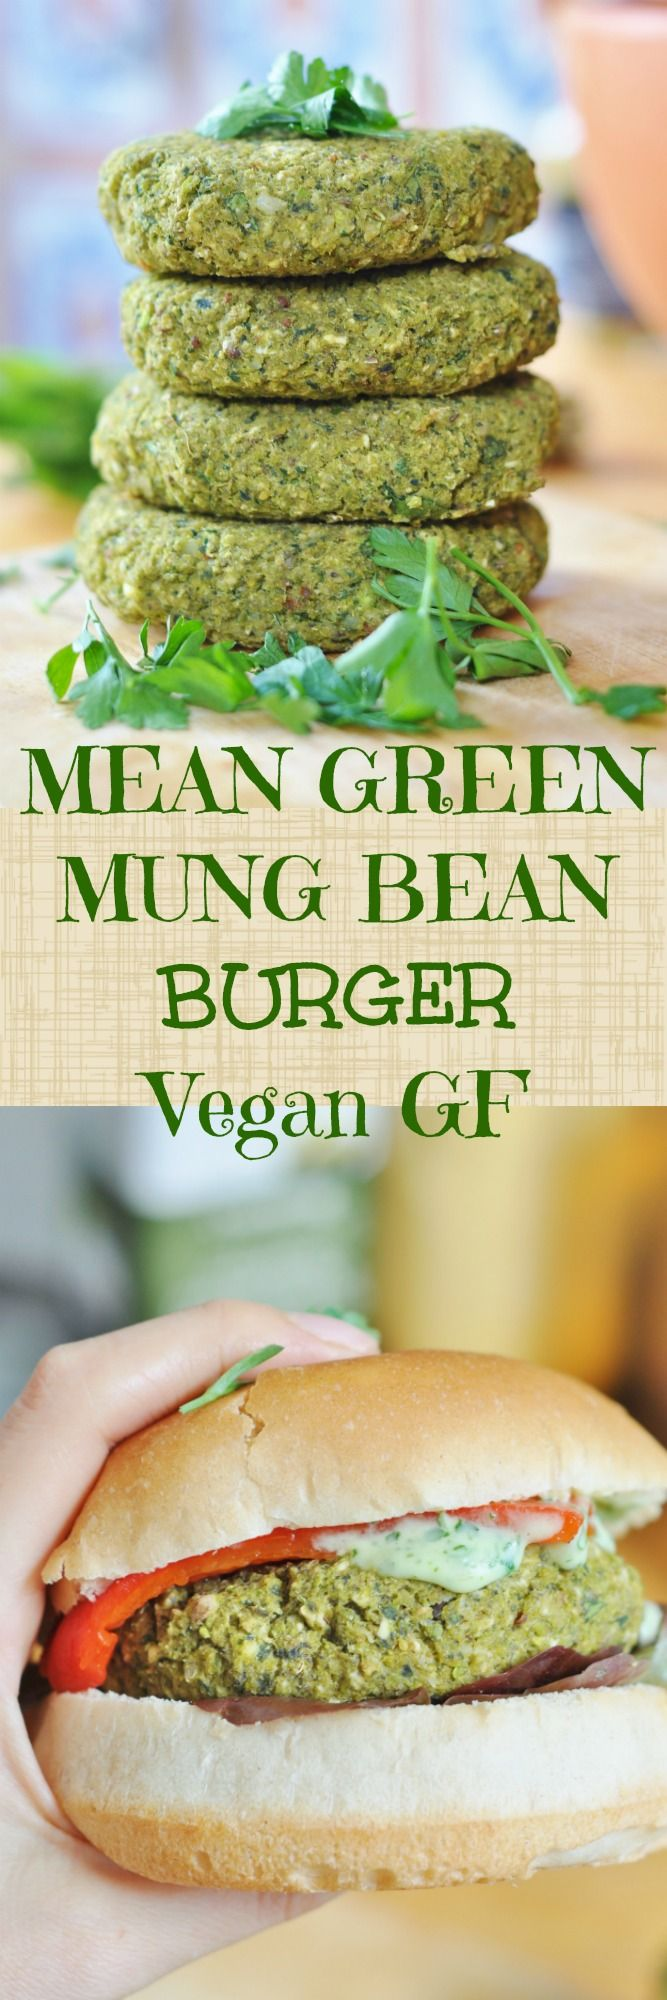 She's MEAN, She's GREEN and She's full of PROTEIN! Loaded with green veggies, Mung Bean Burger from An Ode To Mung Beans http://anodetomungbeans.com/2016/10/10/vegan-burger-series-lean-green-mung-bean-burger-gf-high-protein/